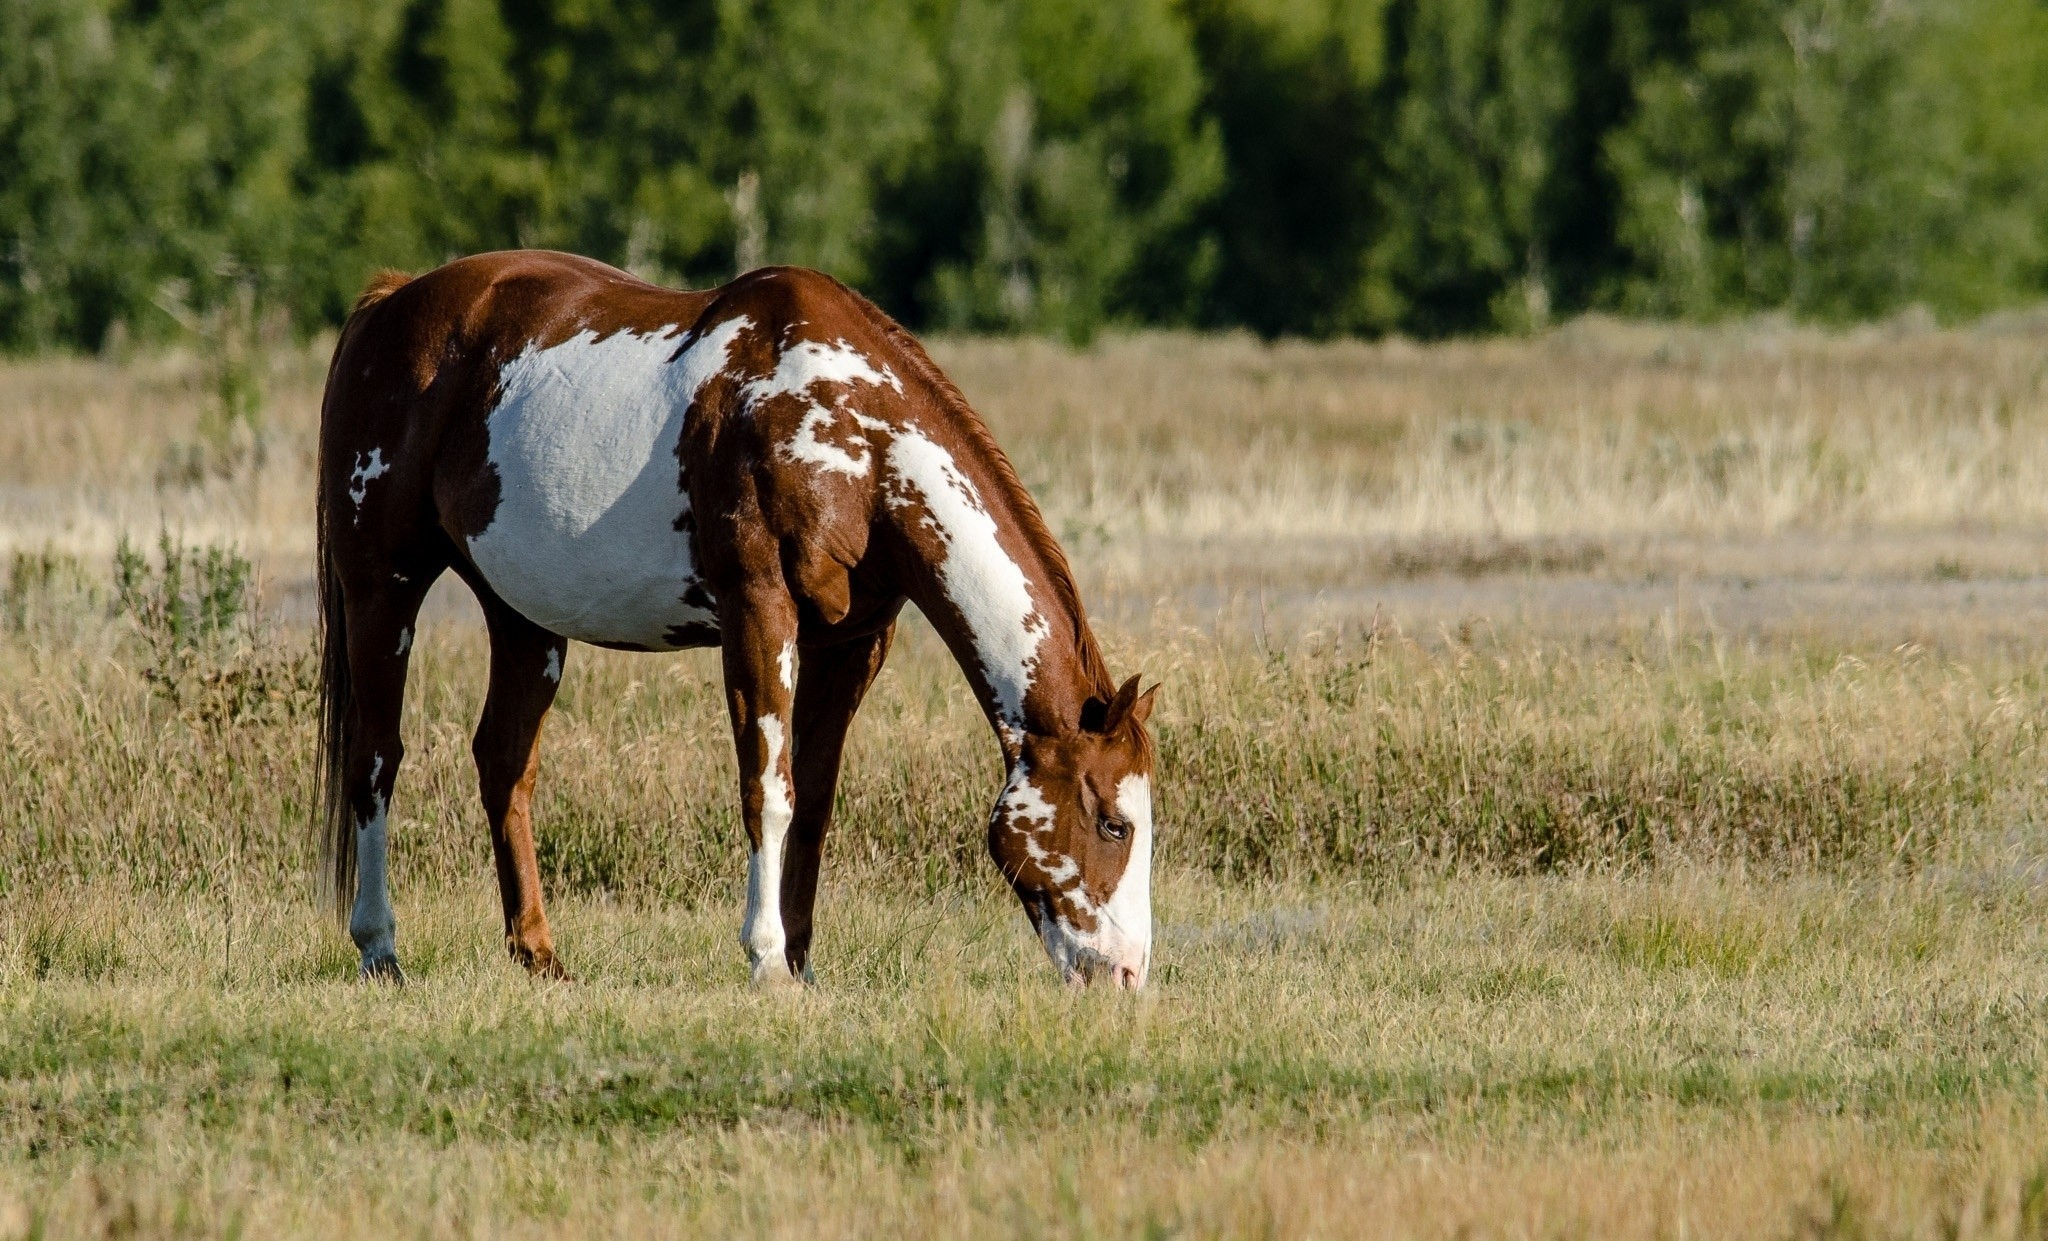 107417 download wallpaper Animals, Food, Grass, Spotted, Spotty, Field, Stroll, Horse screensavers and pictures for free